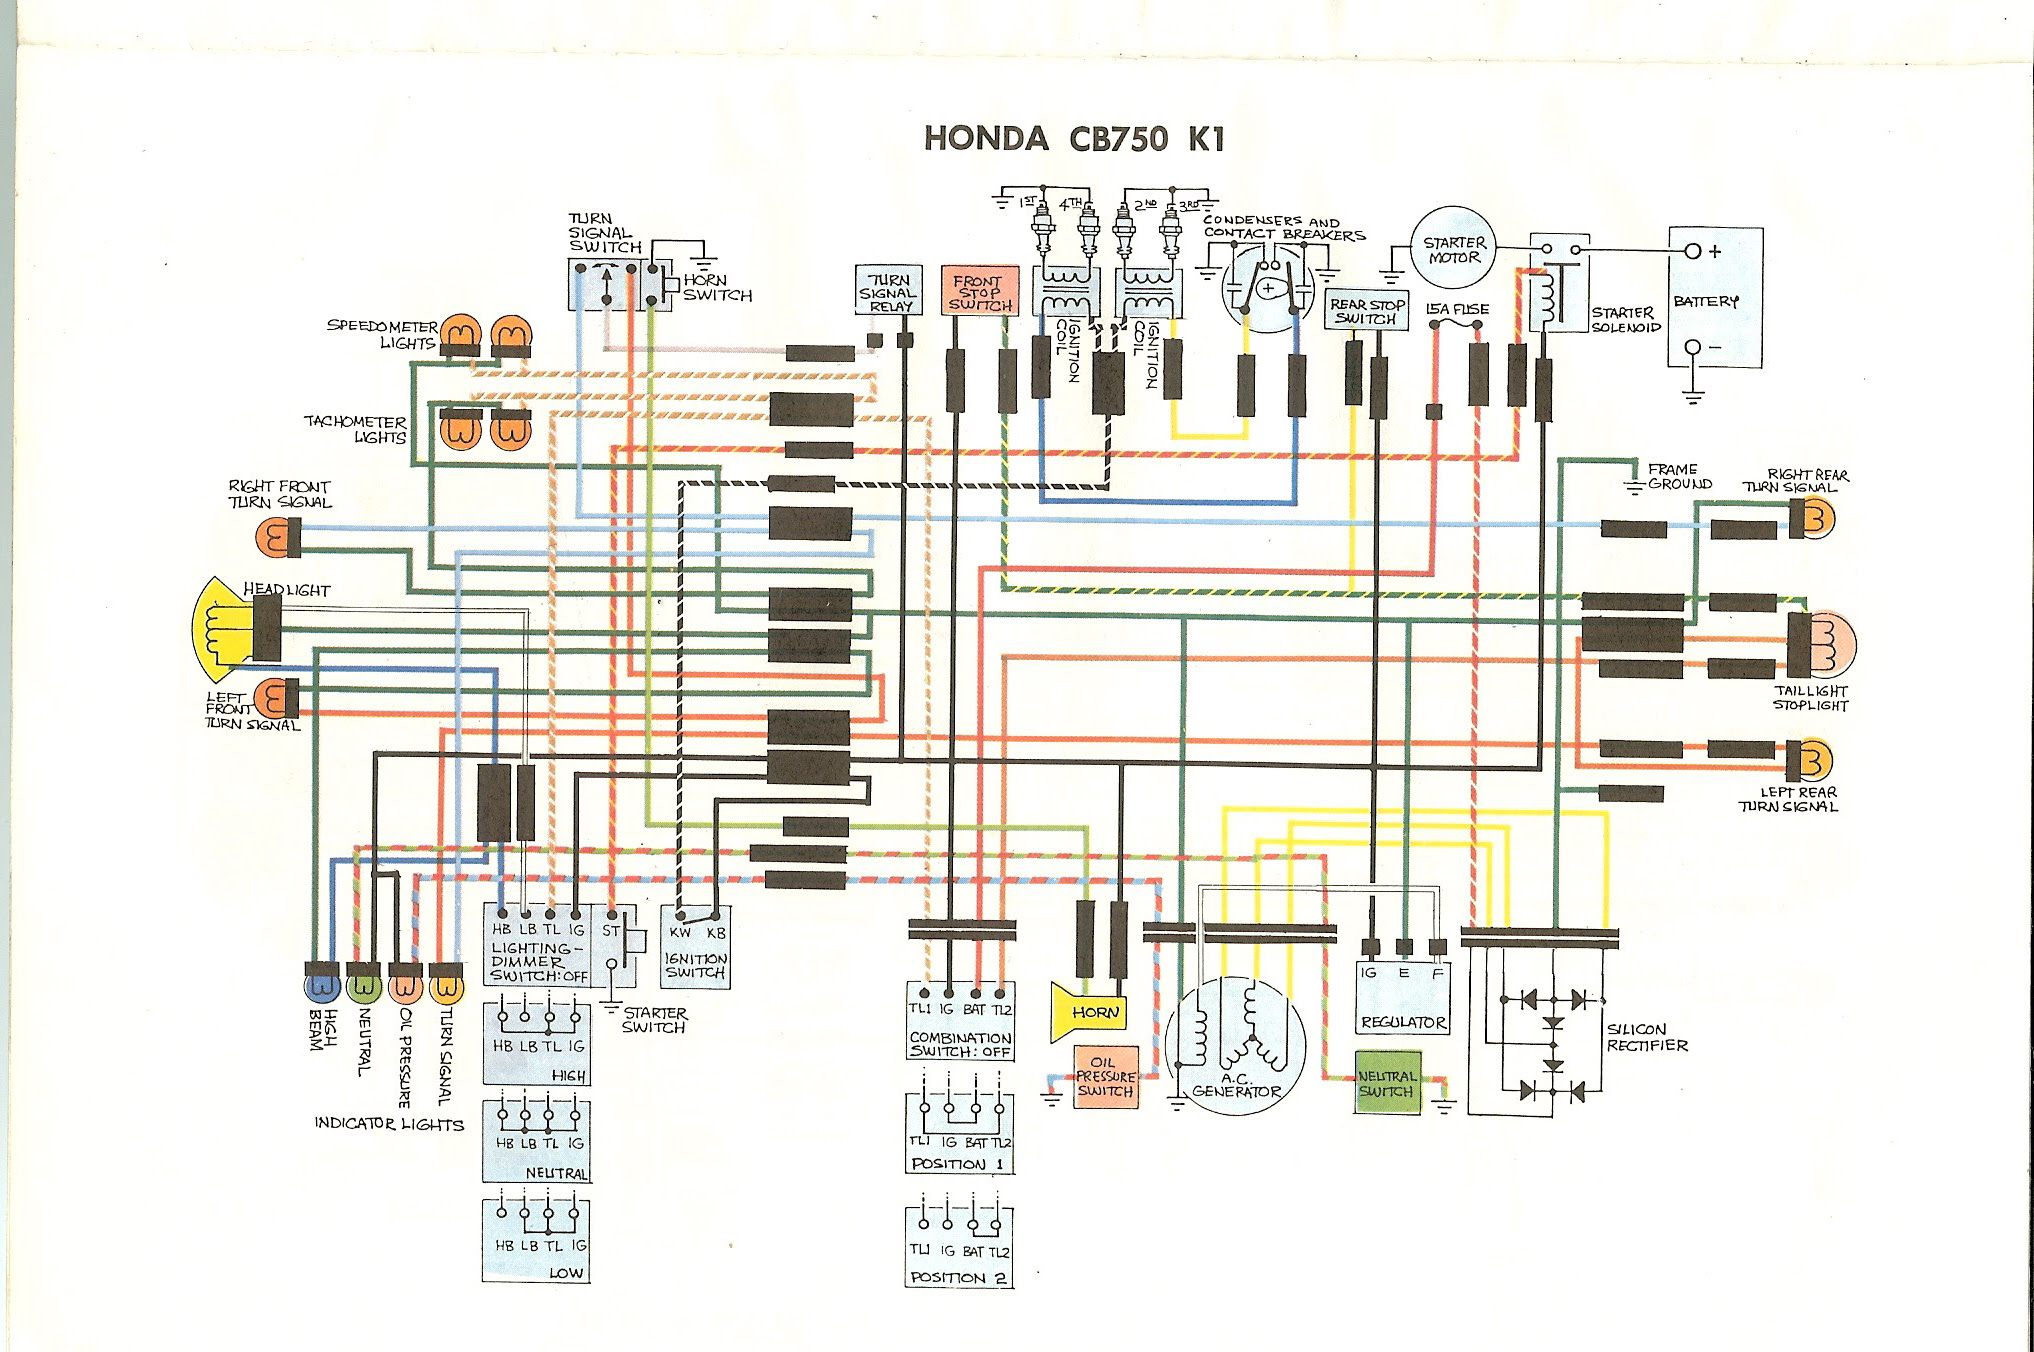 1971 Honda 750 Wiring Diagram Wiring Diagram Local A Local A Maceratadoc It